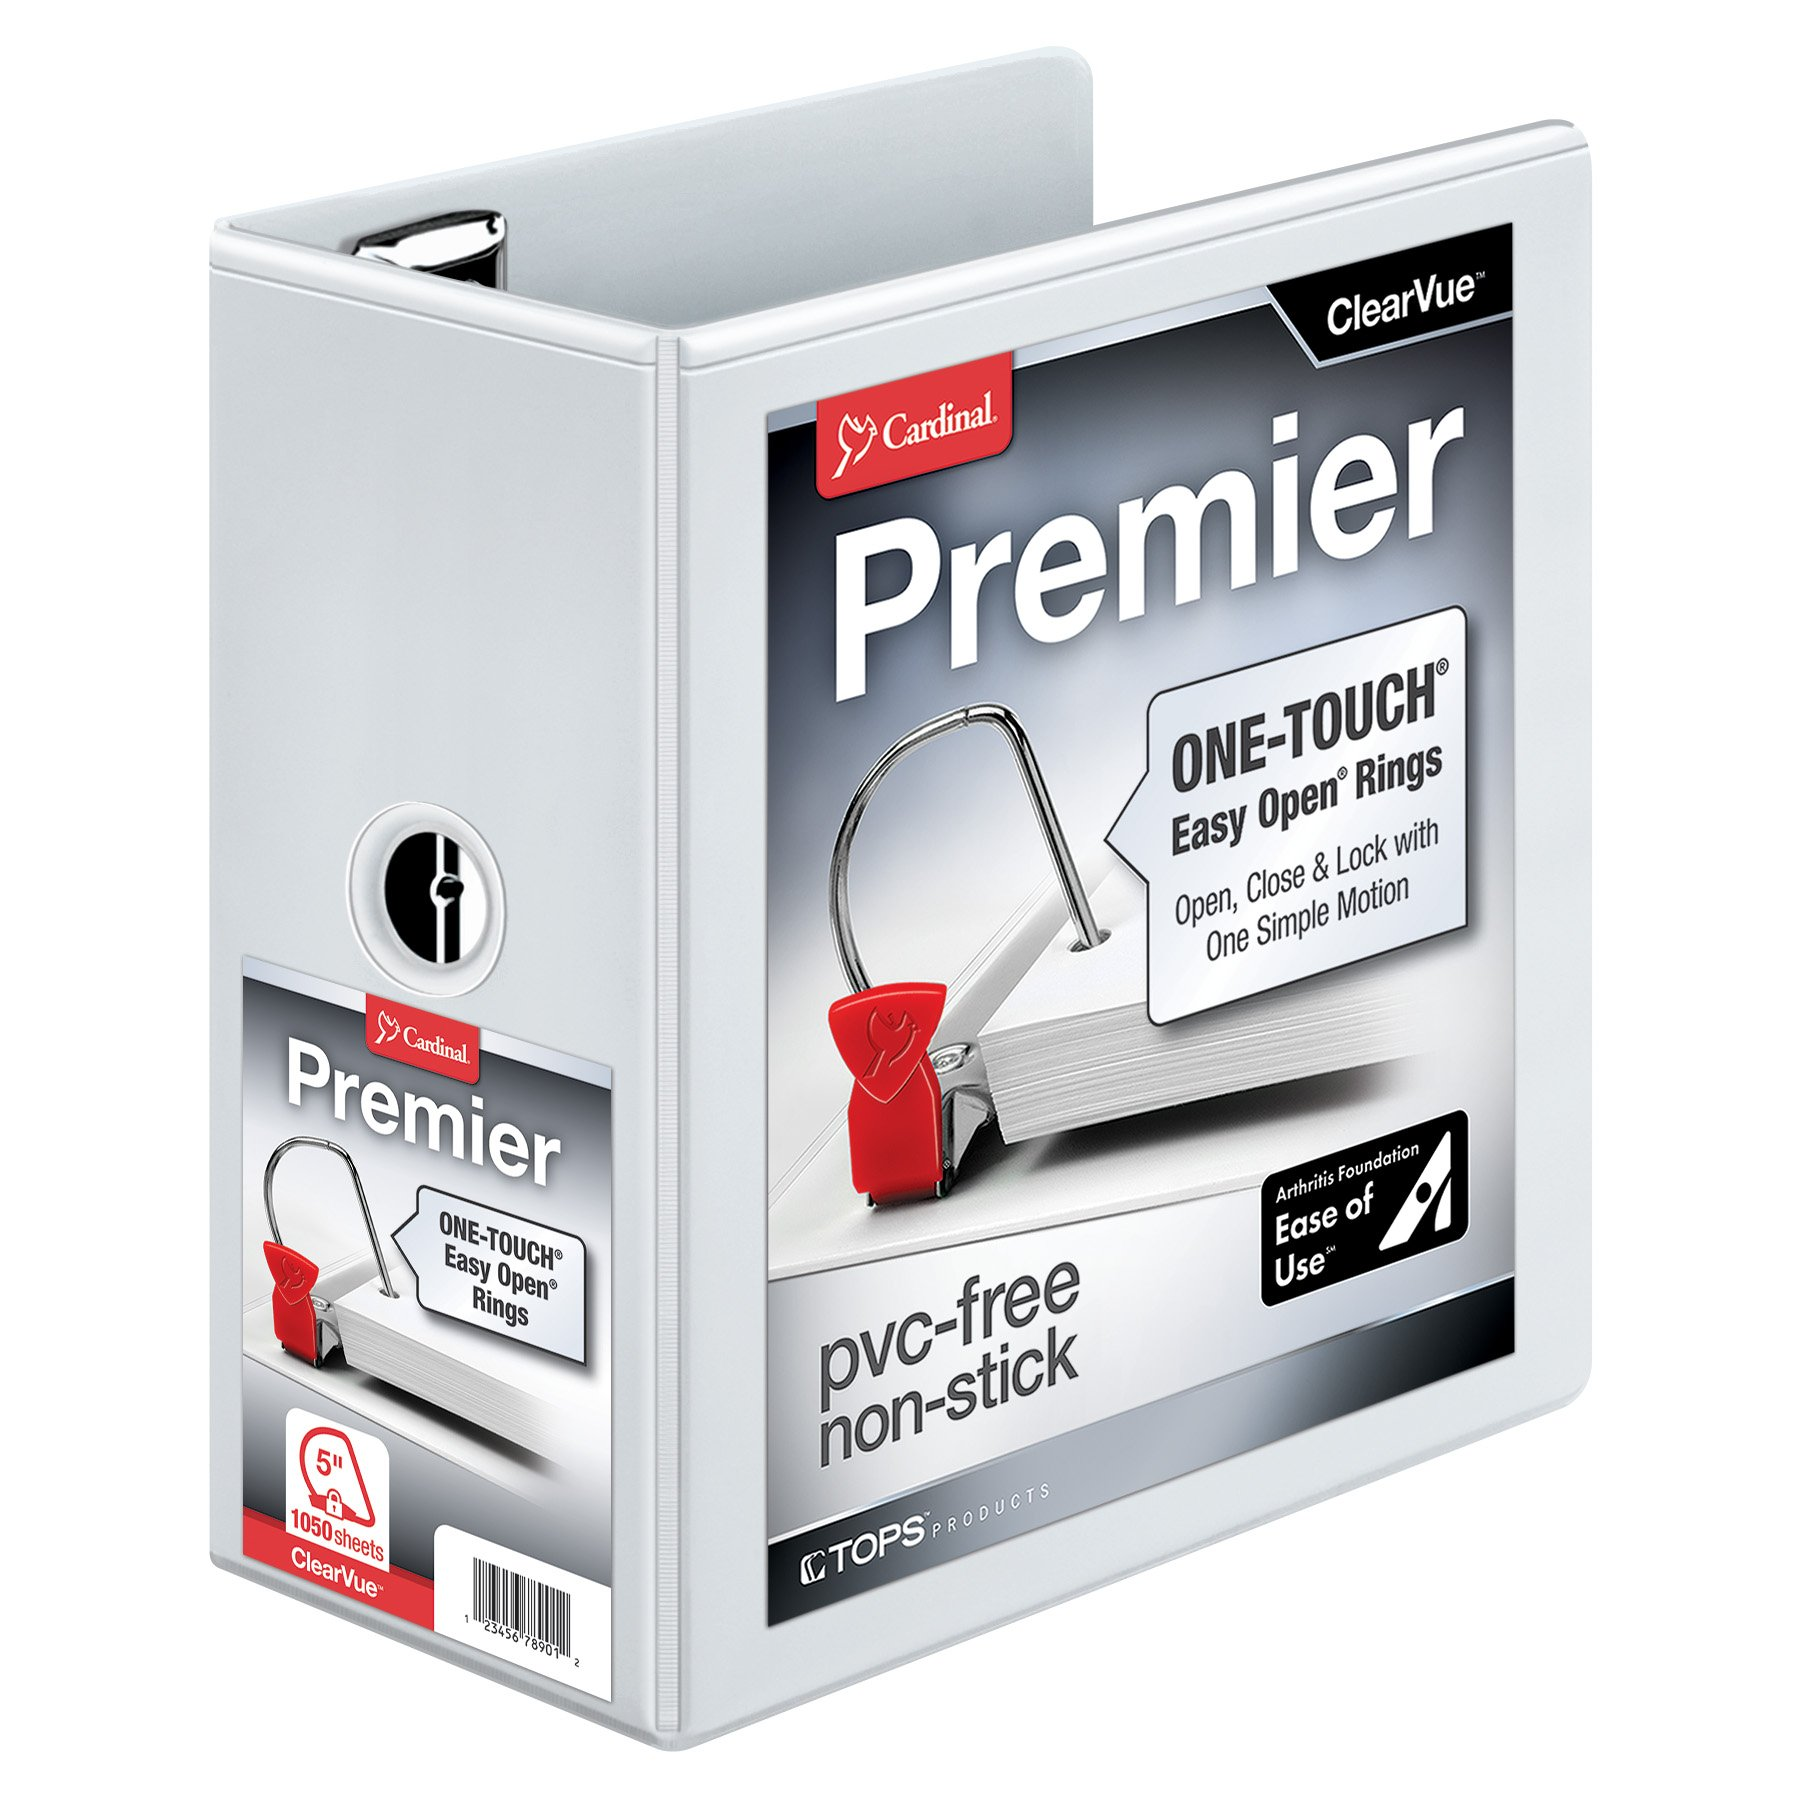 Cardinal Premier Easy Open 3-Ring Binder, 5'', ONE-Touch Easy Open Locking Slant-D Rings, 1,050-Sheet Capacity, ClearVue Cover, White (10350CB) by Cardinal